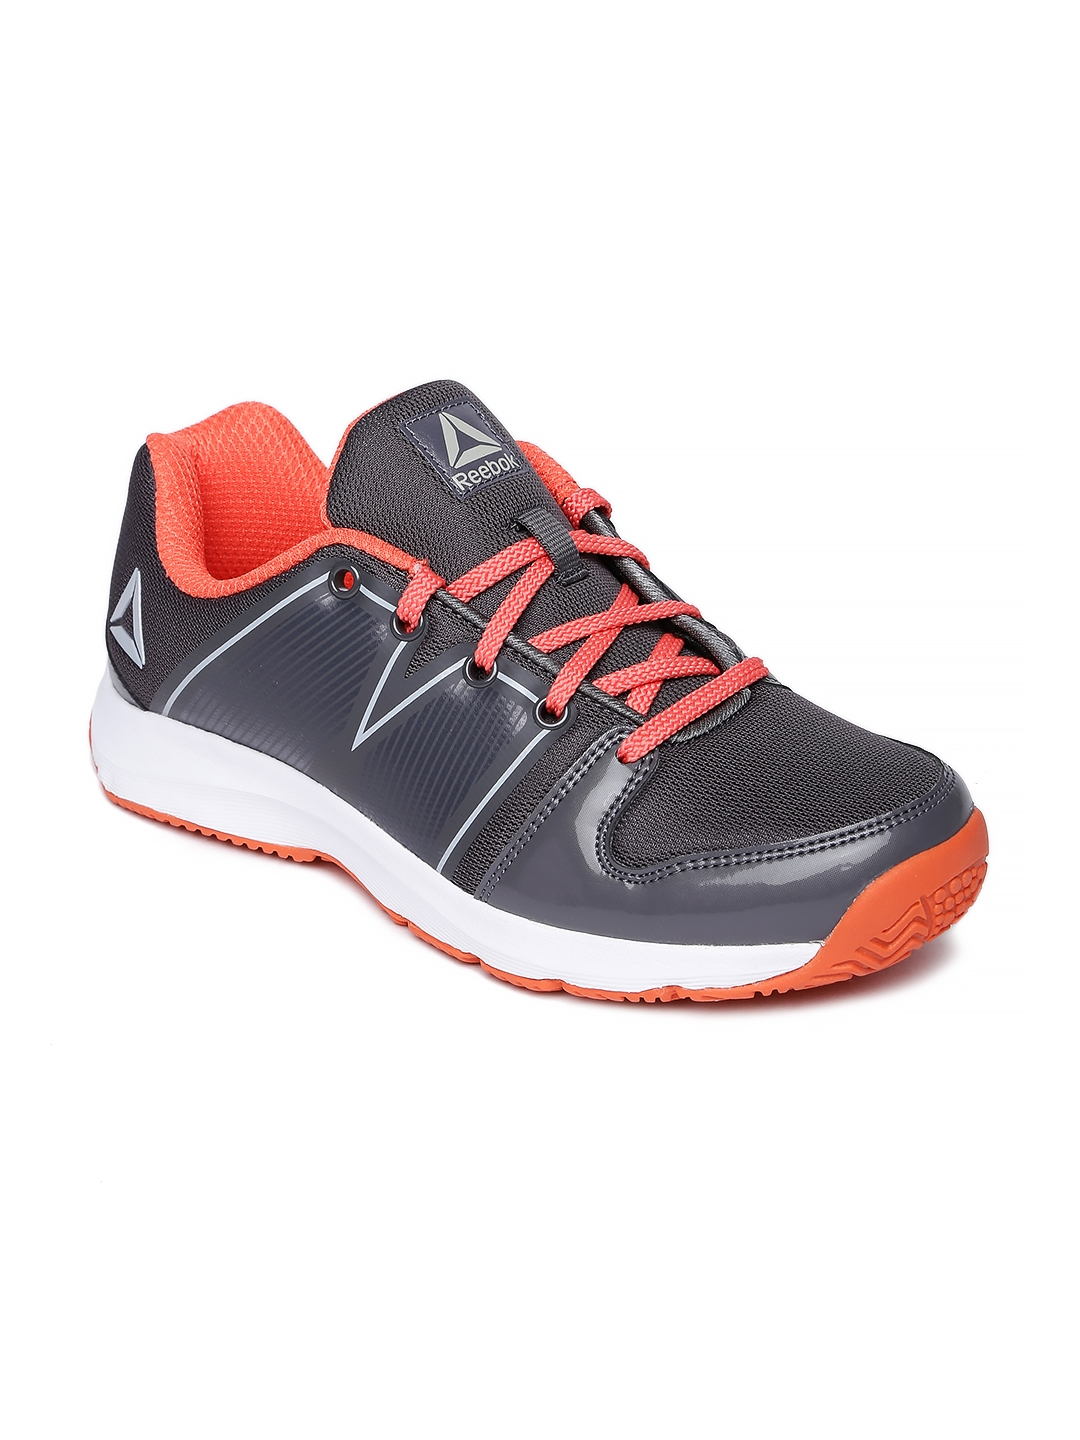 8ff4424e7 Buy Reebok Women Grey Cool Traction Extreme Sports Shoes - Sports ...